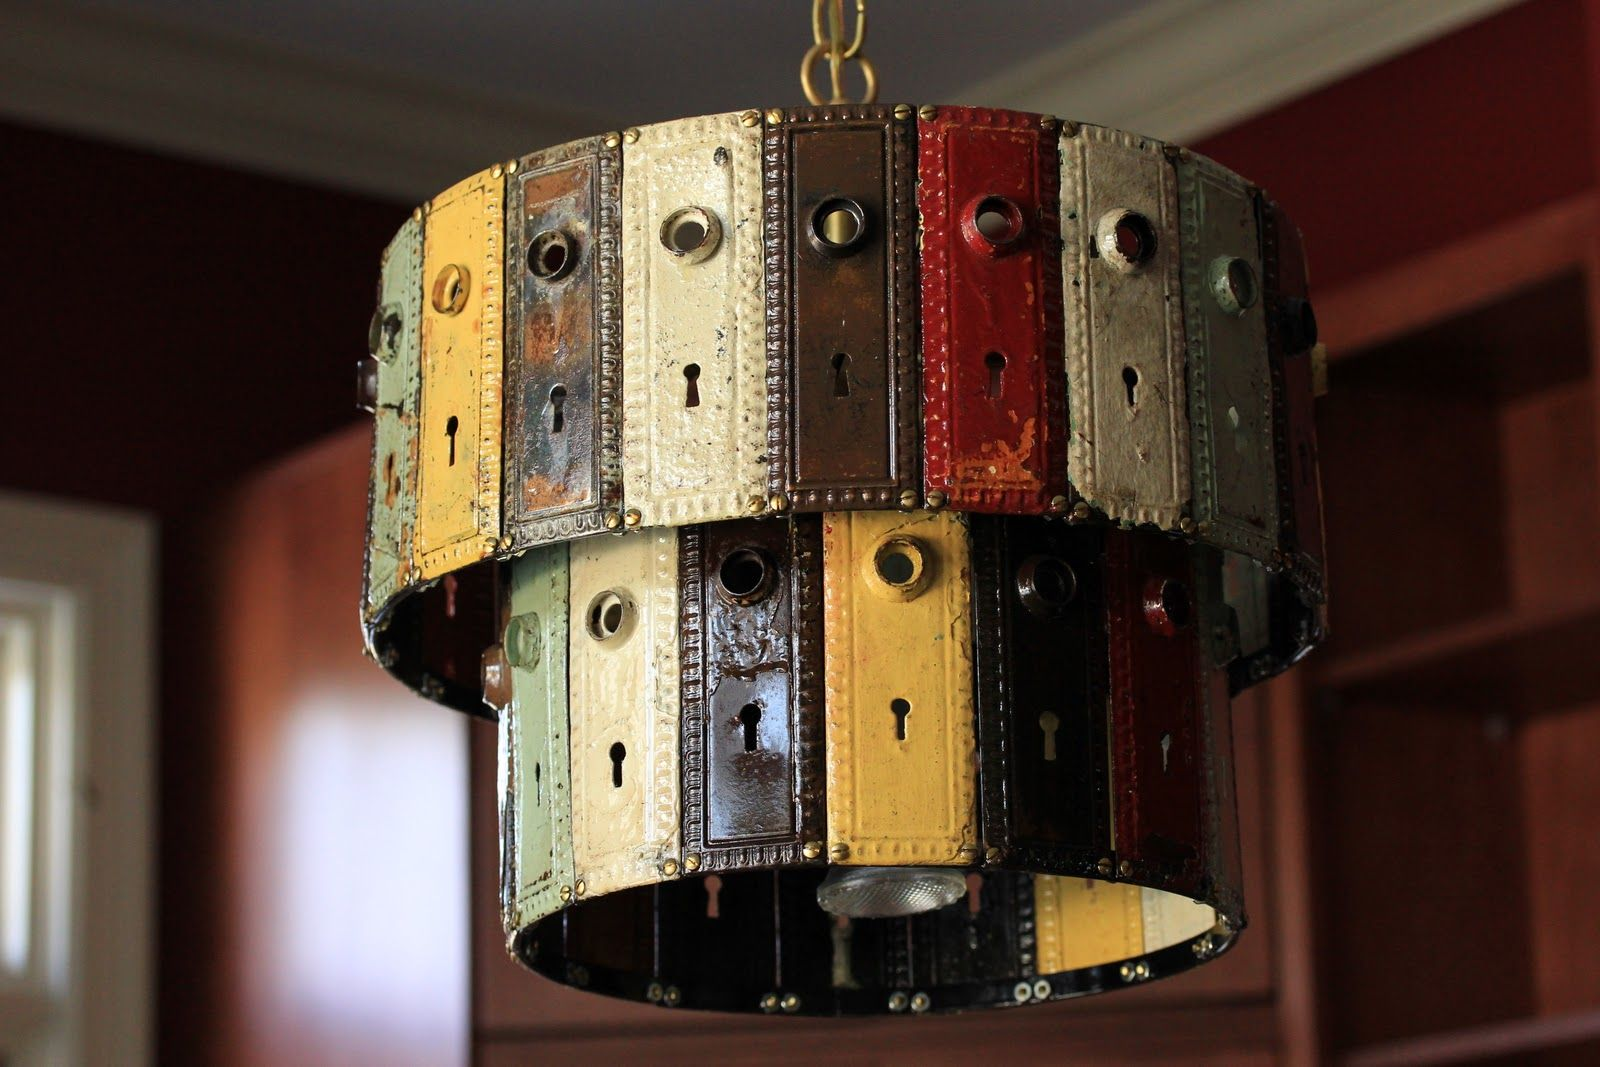 Cool light fixture made from old door handle plates bought some of